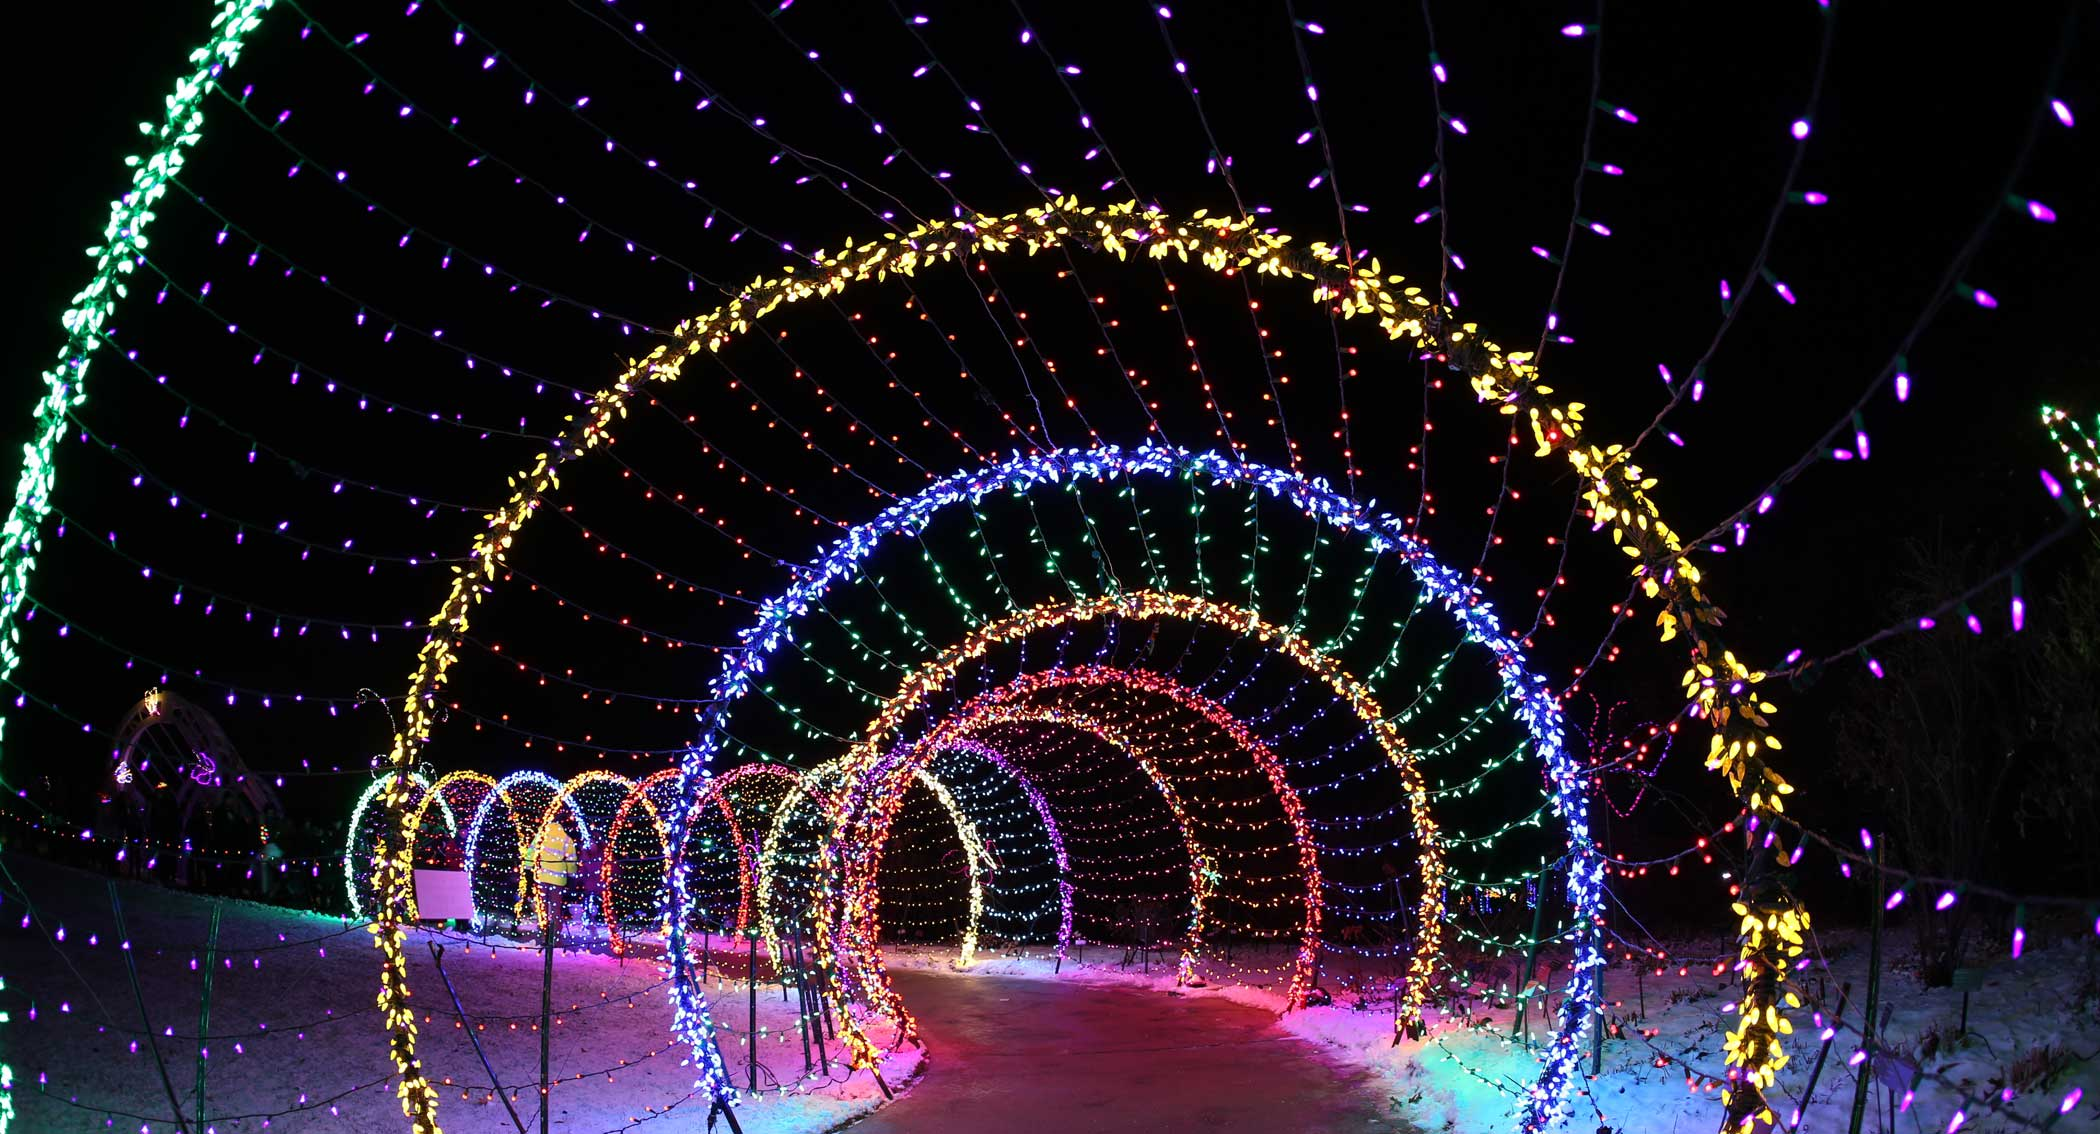 WPS Garden of Lights Caterpillar Light Display PC Kathleen Caylor Photography